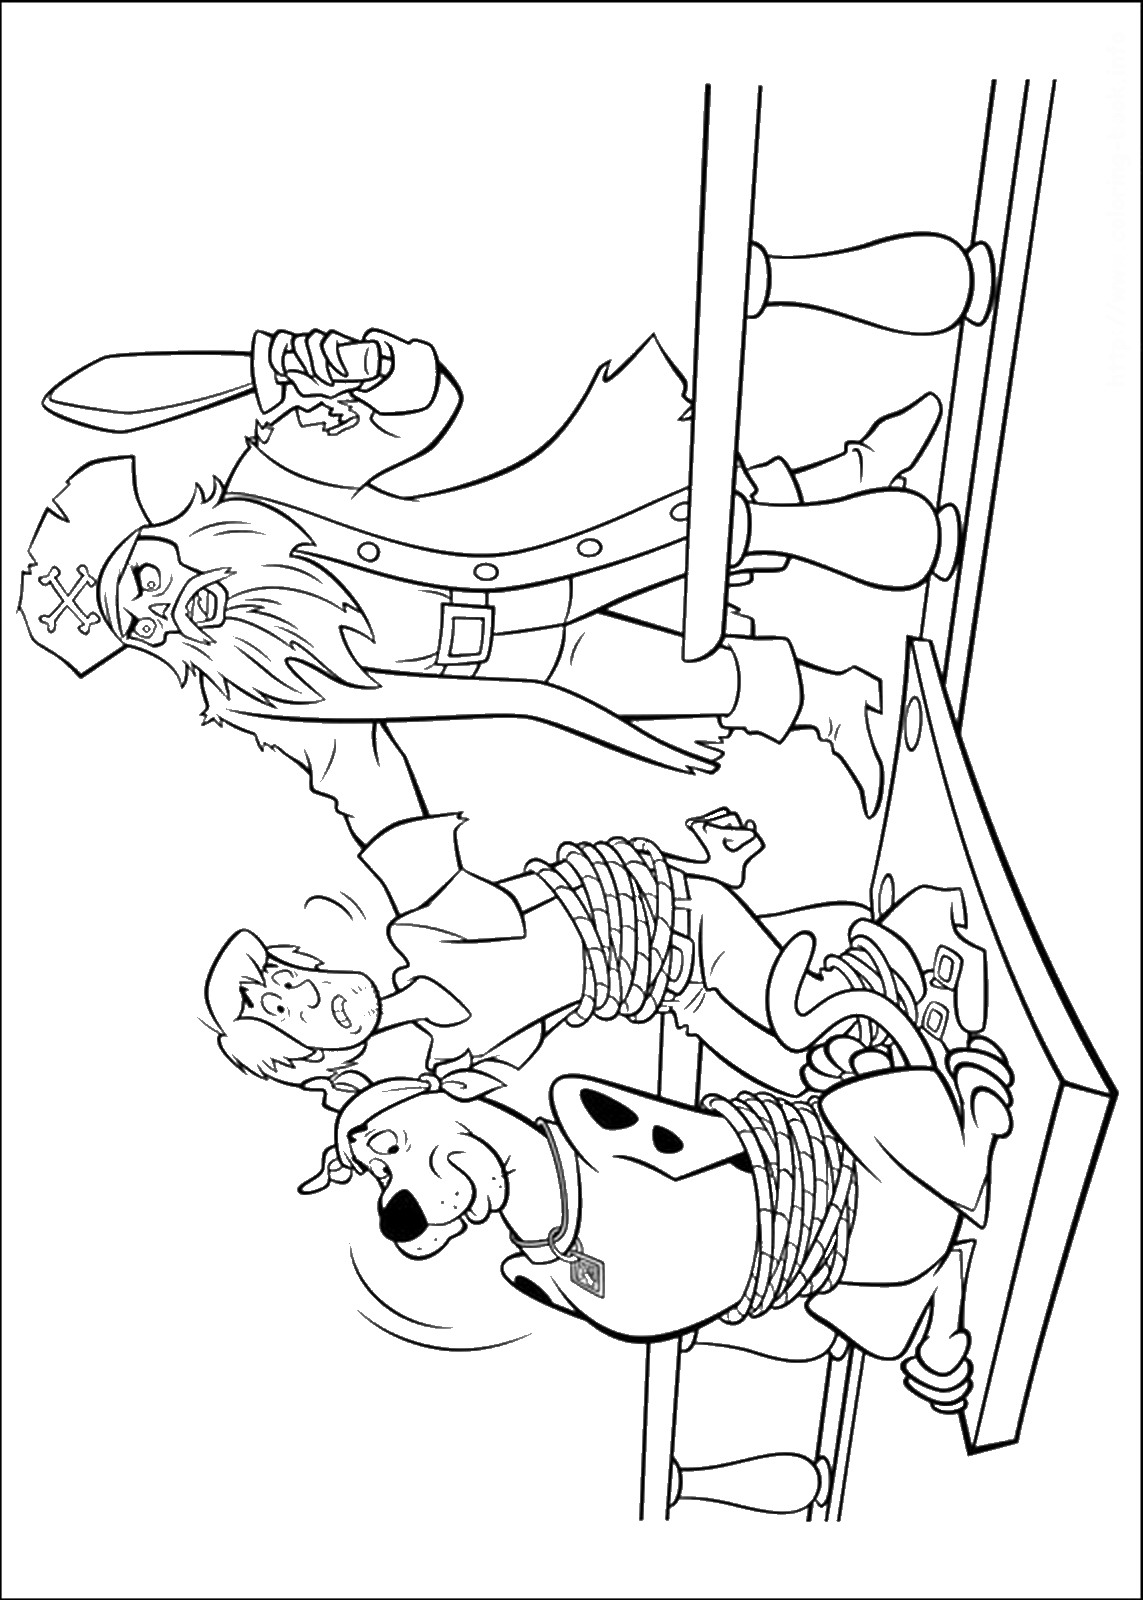 coloring pages scooby doo scooby doo coloring pages for childrens printable for free scooby doo pages coloring